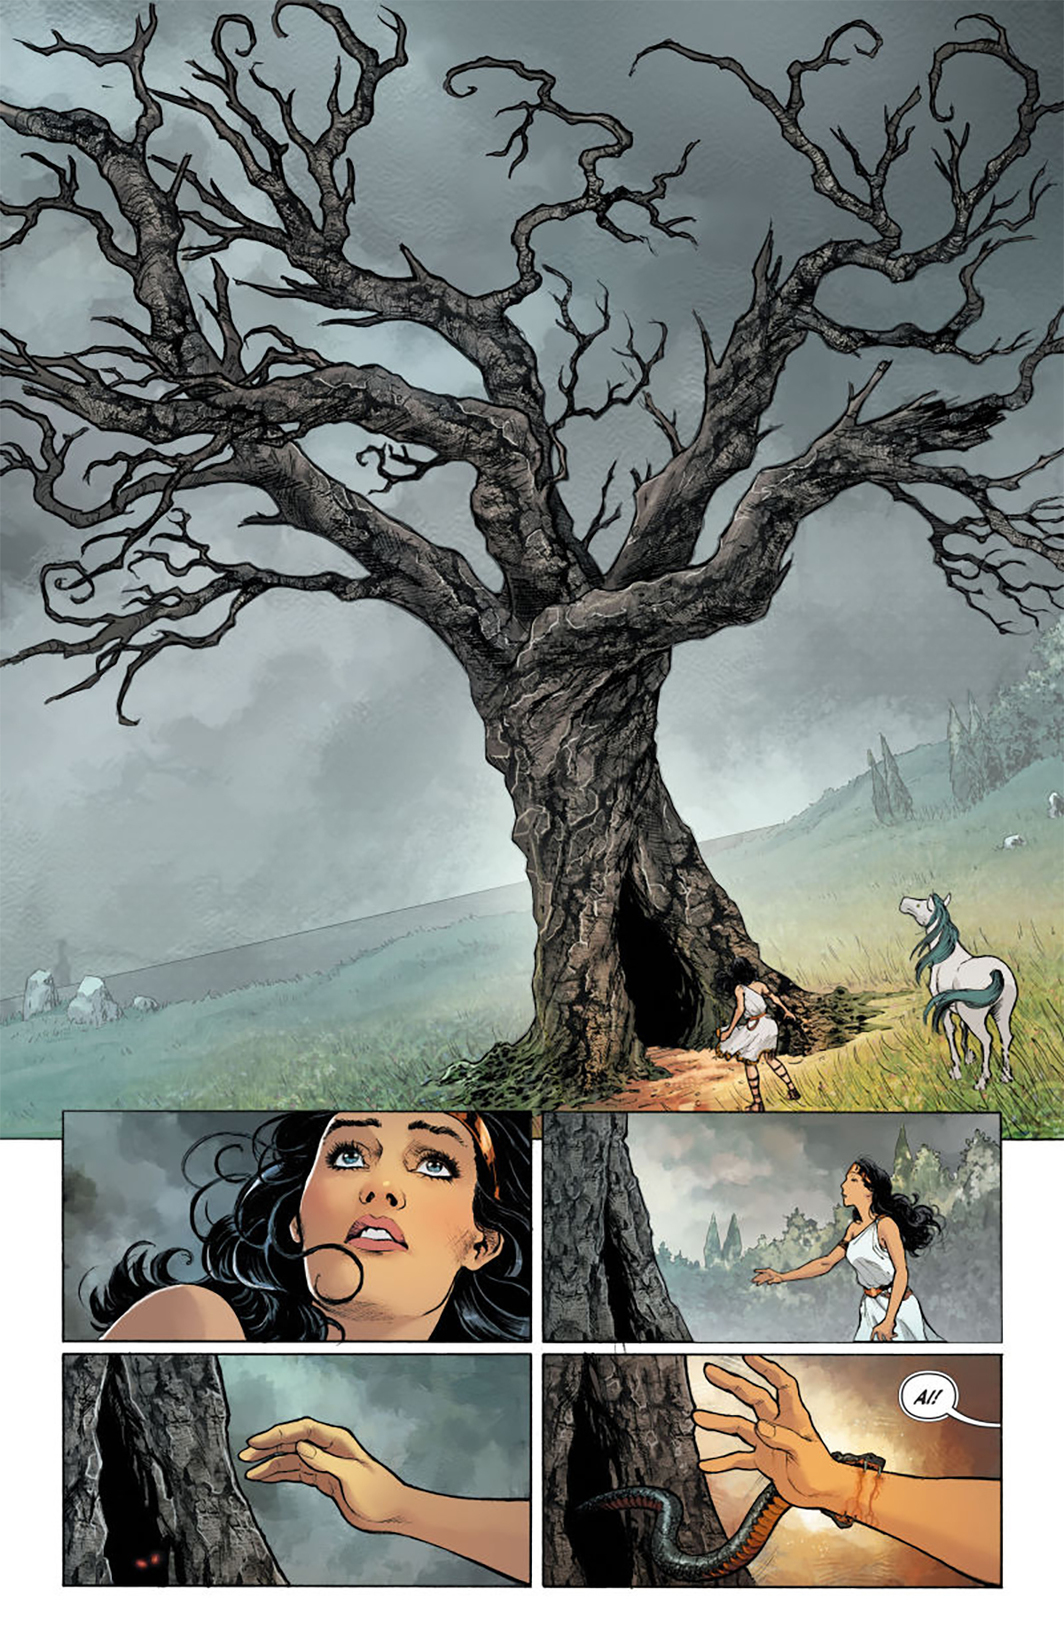 Detail from Greg Ruck and Liam Sharp's The Truth: Part Four, April 2017. From Wonder Woman 2016, no. 21 (DC Comics, 2017).